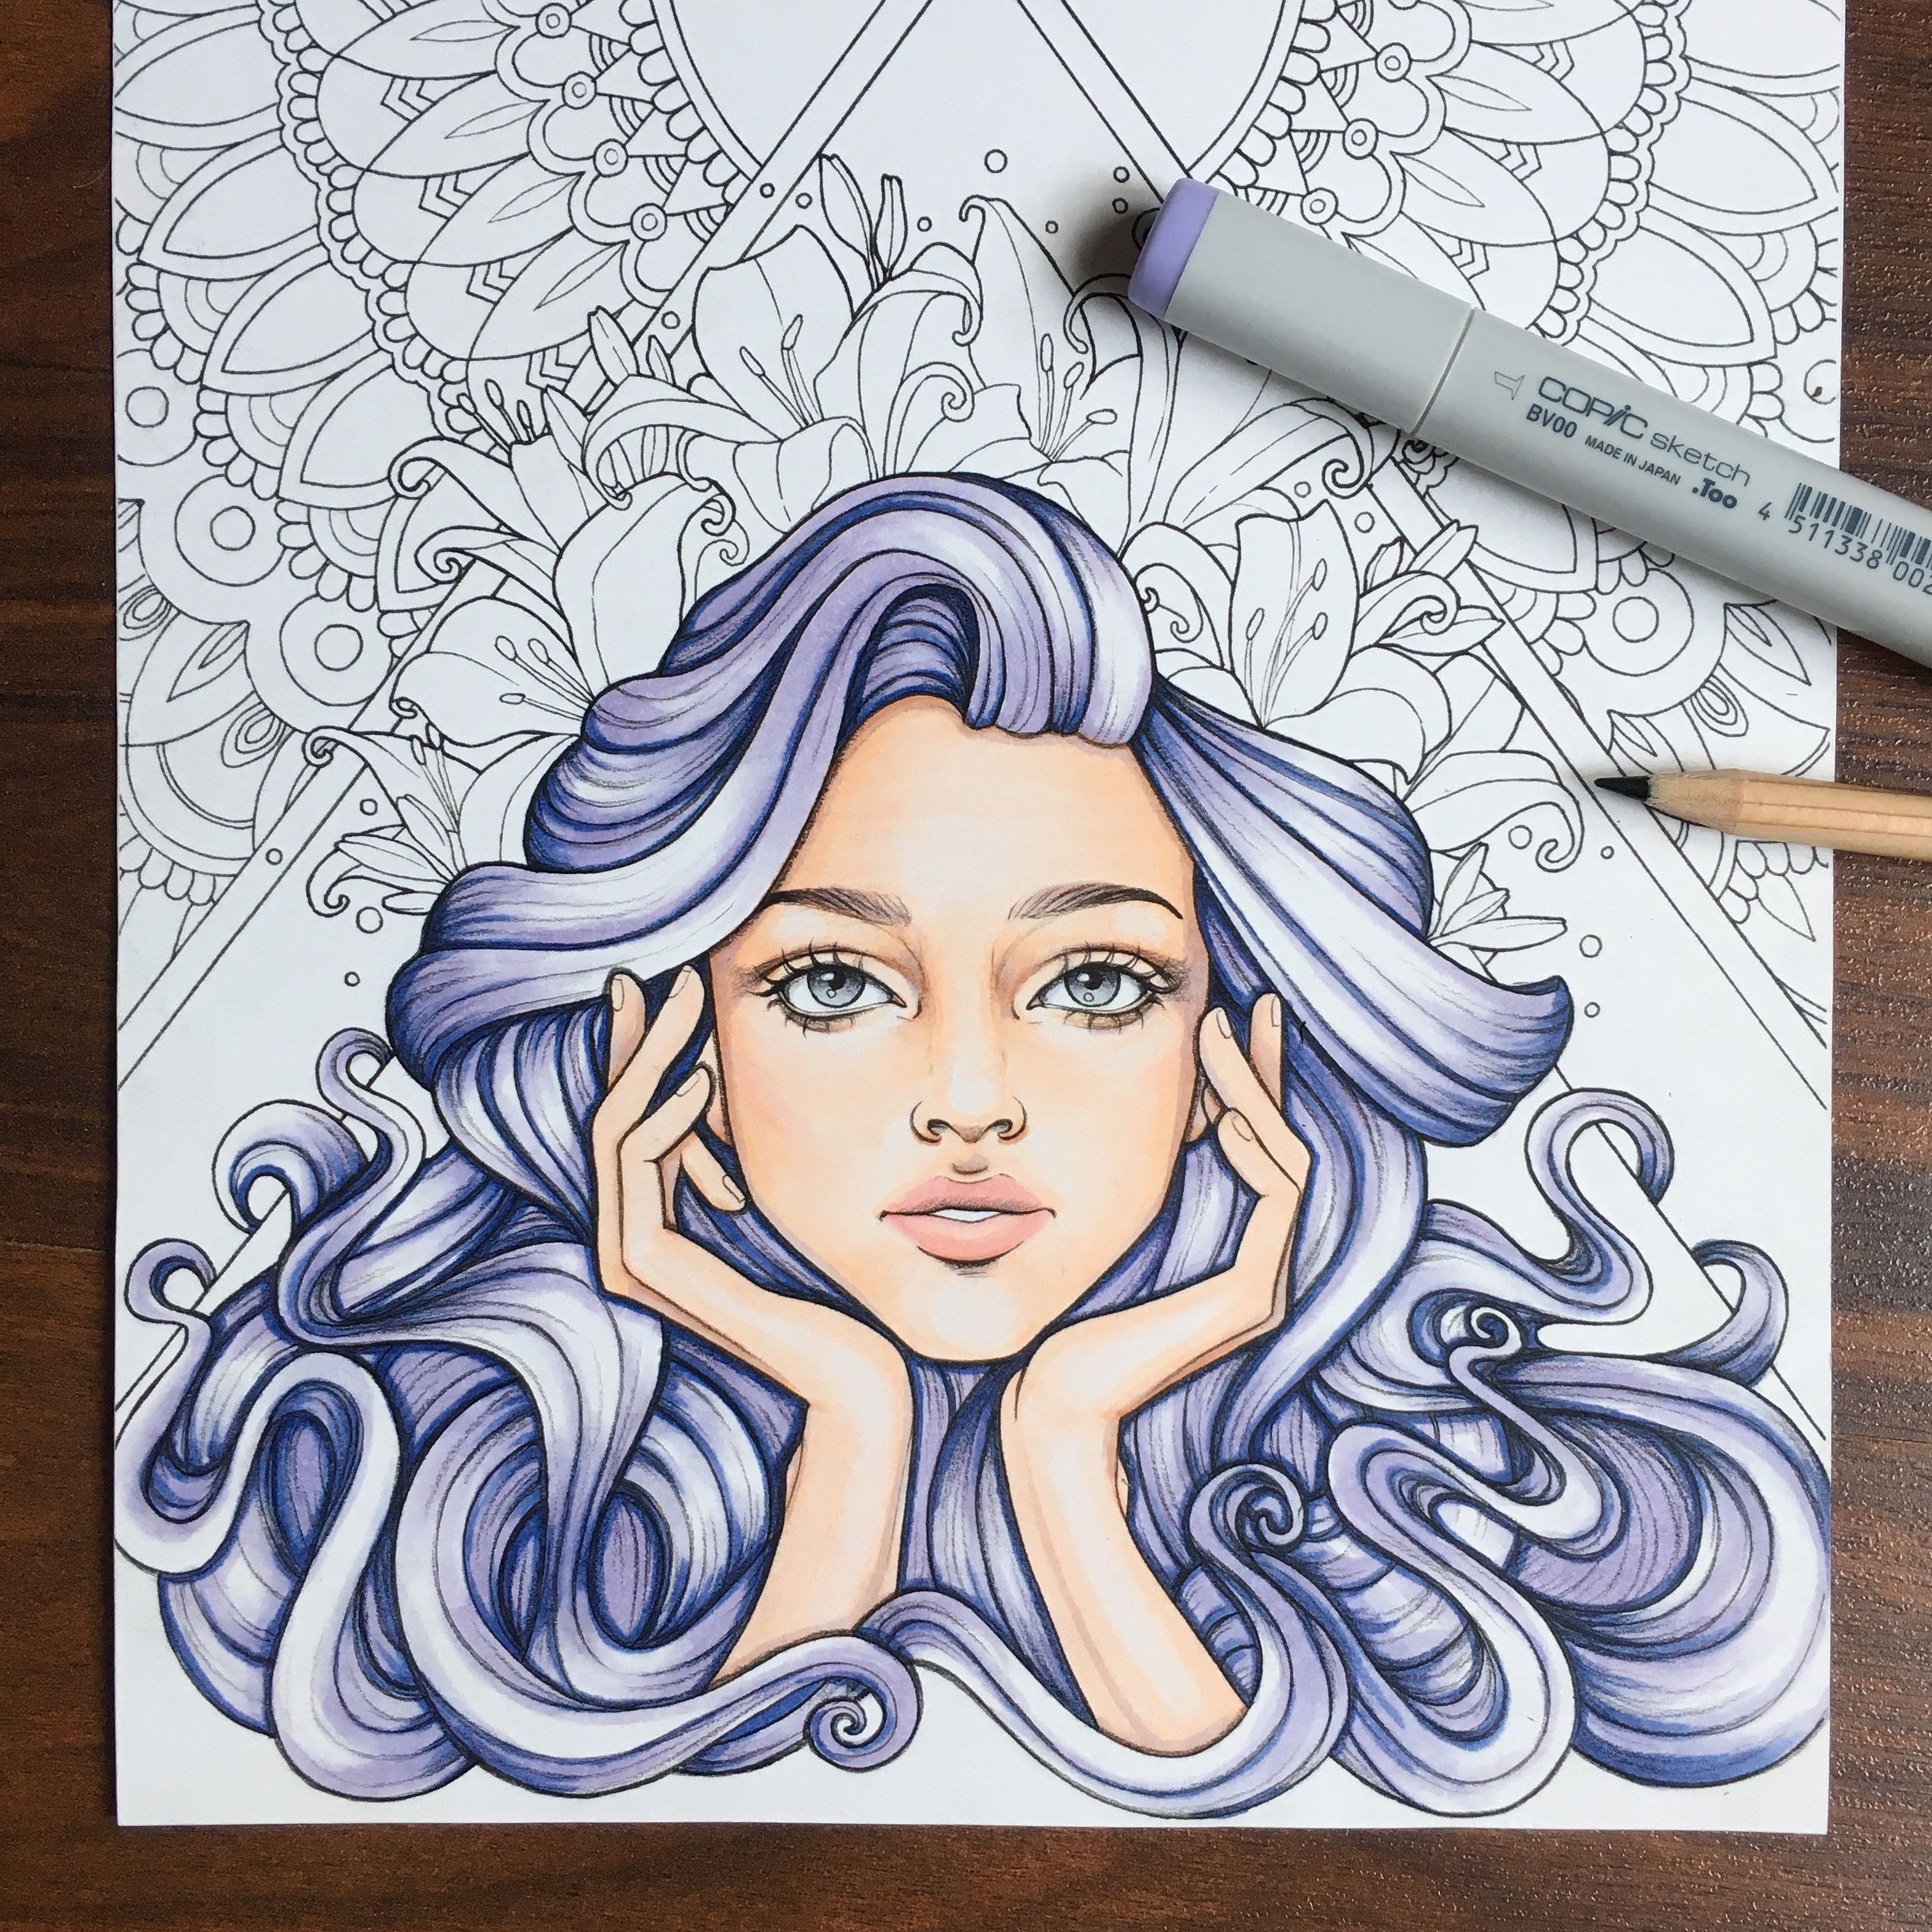 Testing Some Of My Linework For The Coloring Book Copicmarker Cansonpaper Tombowusa Copic Marker Art Marker Art Art Reference Photos